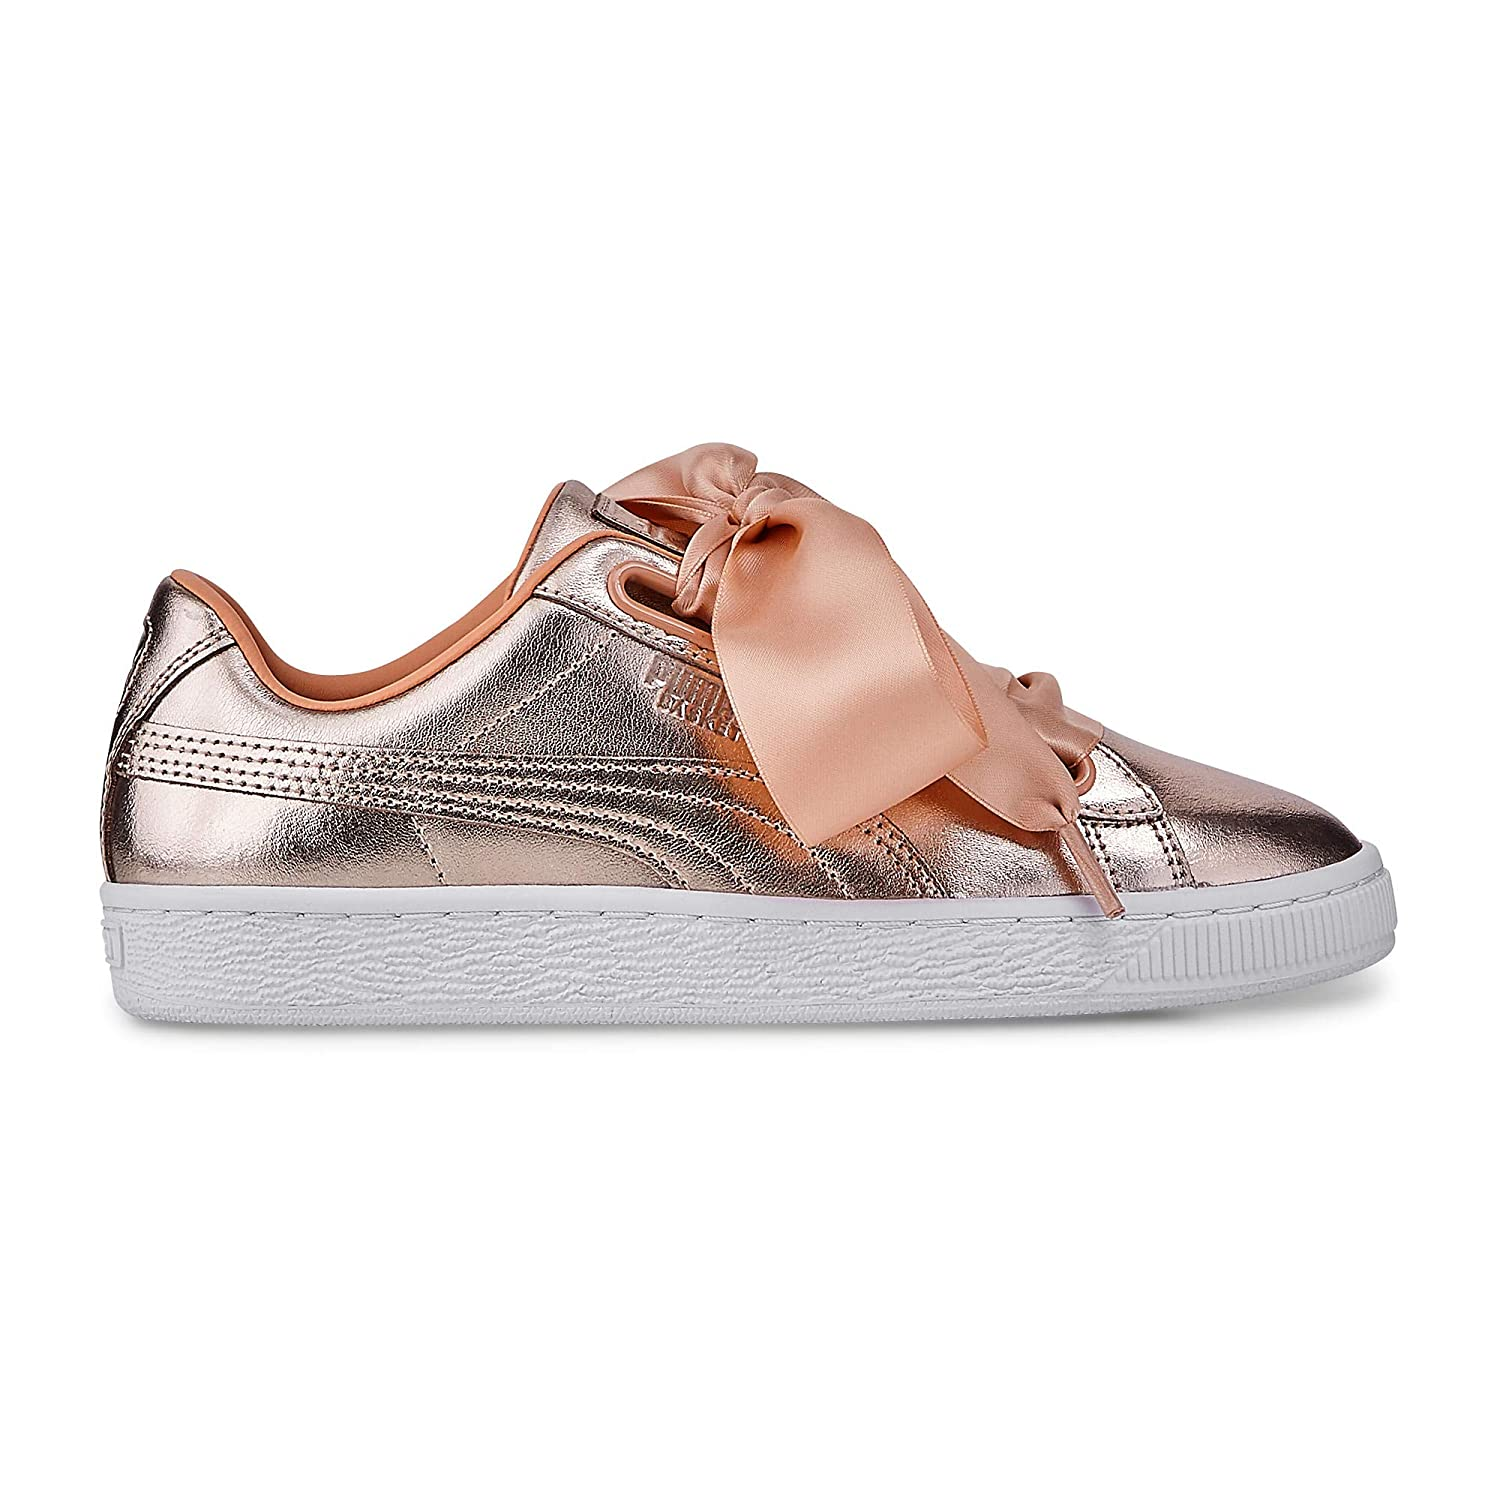 ukShoesamp; Heart Luxe ShoesAmazon W Puma Basket Bags co CrdBthQxs